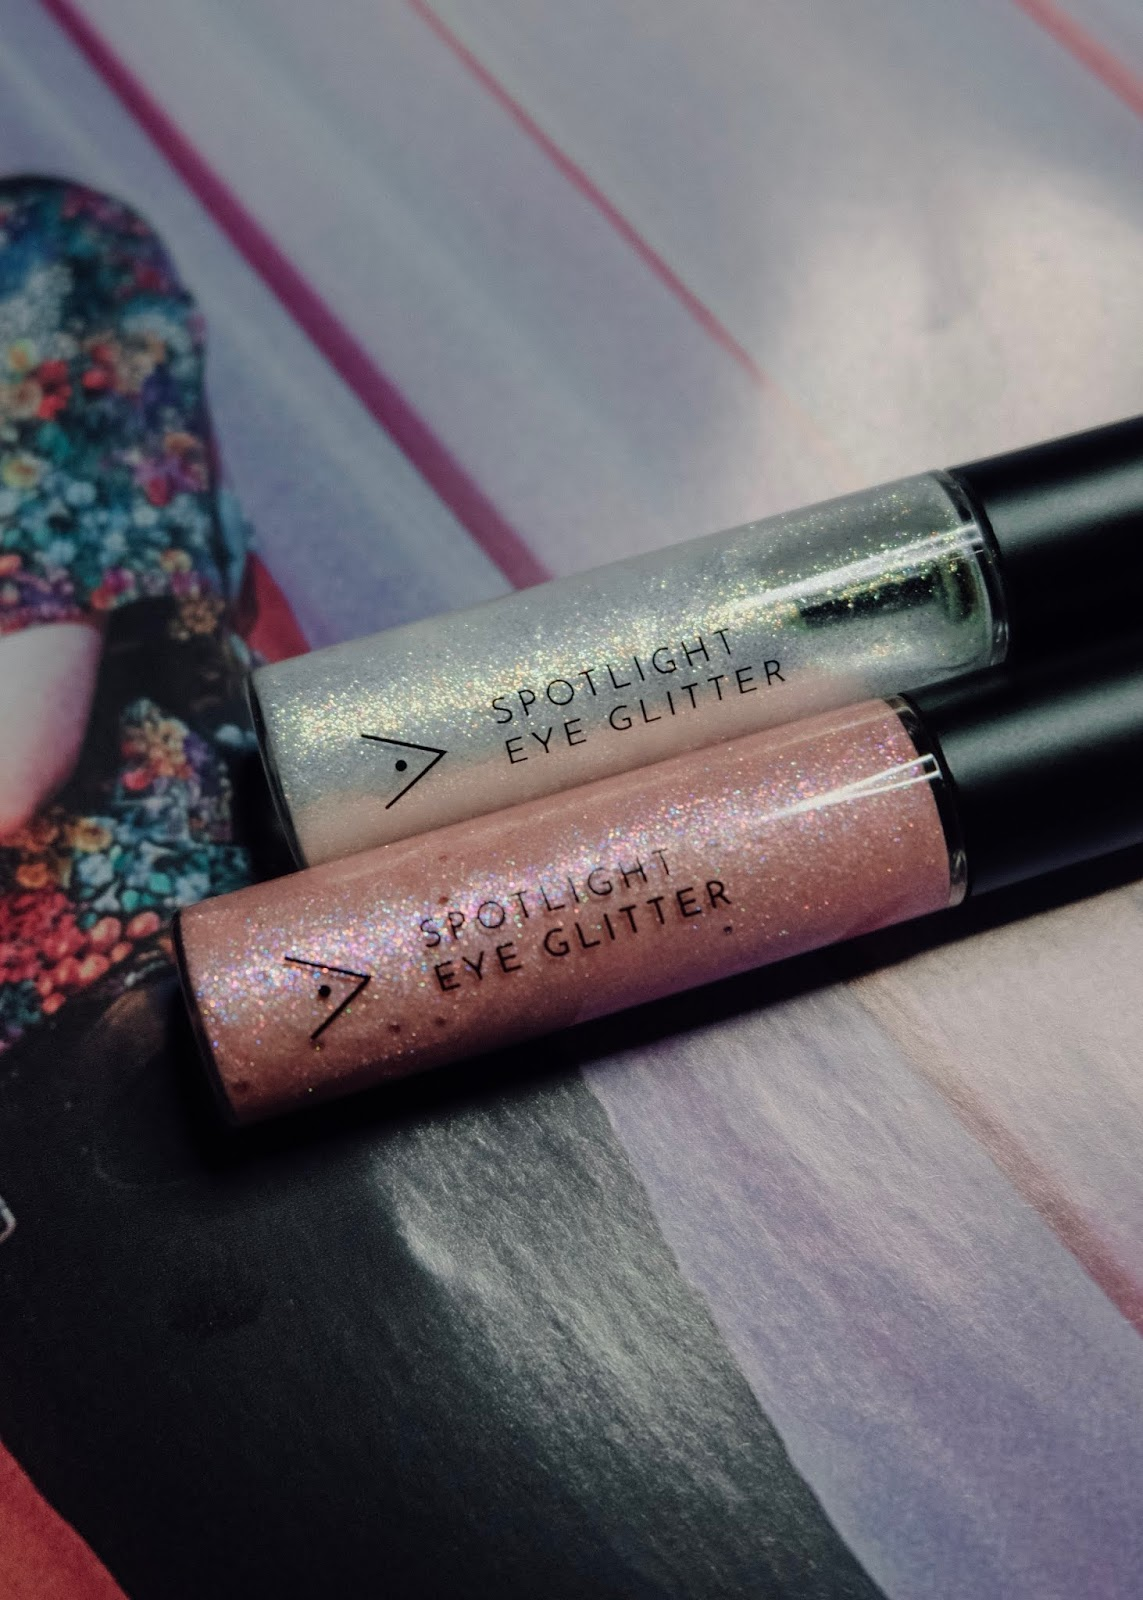 Althea Spotlight Eye Glitter Curitan Aqalili